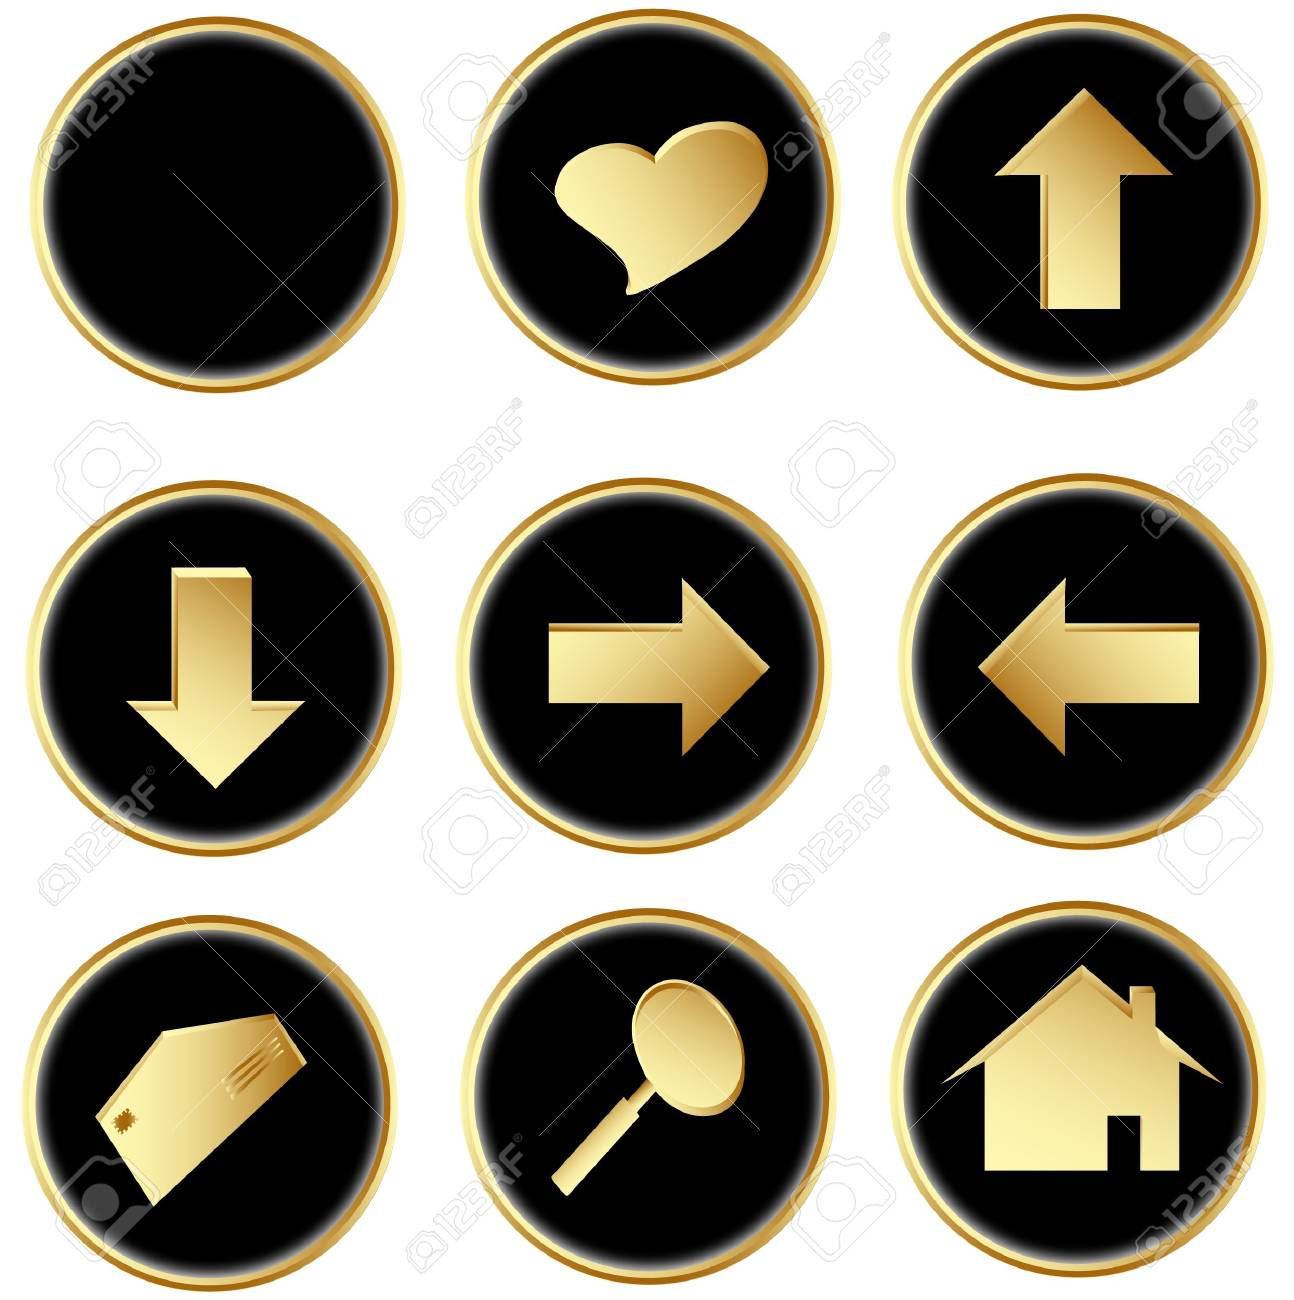 Illustration of the black round web buttons Stock Photo - 4274691